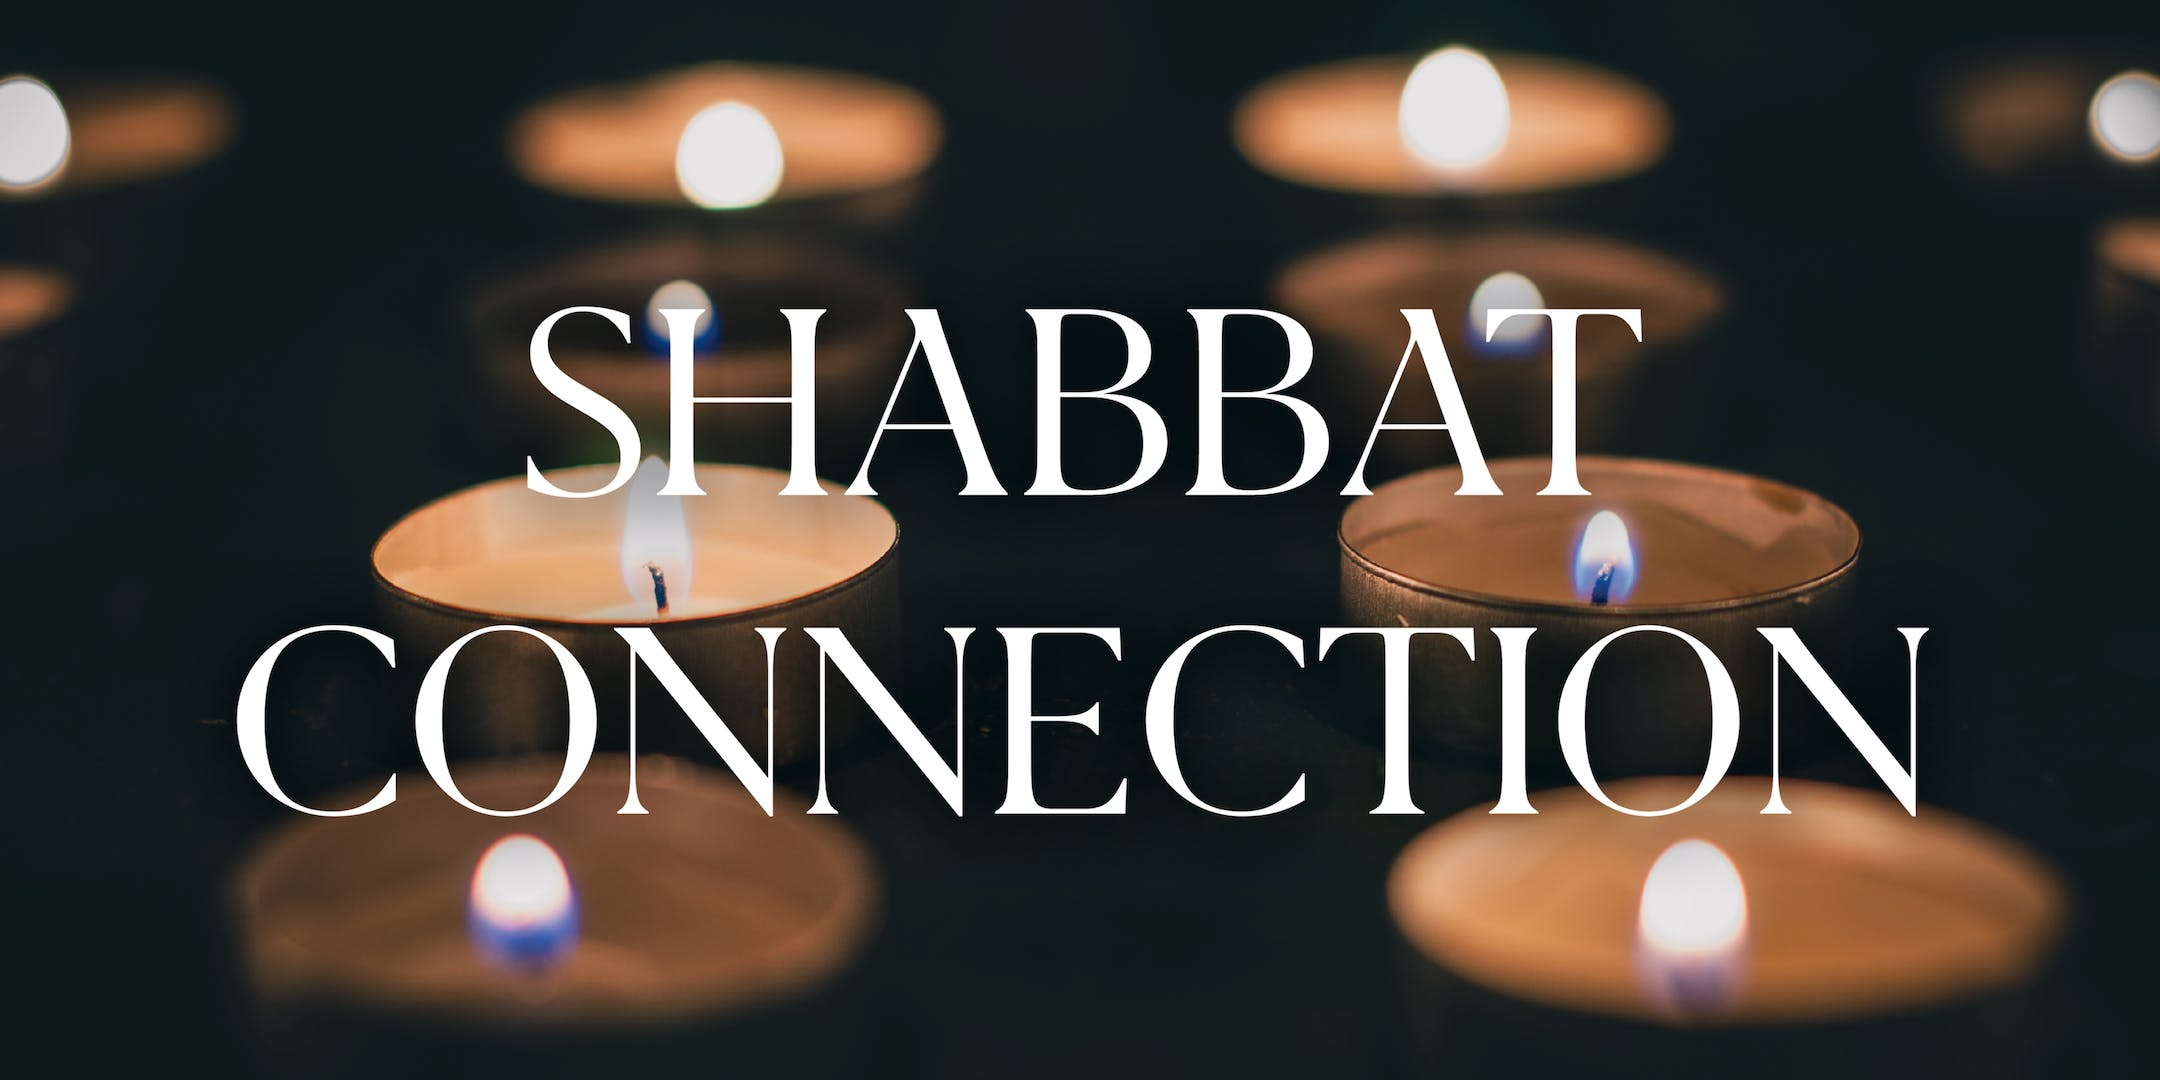 Shabbat New York 2019